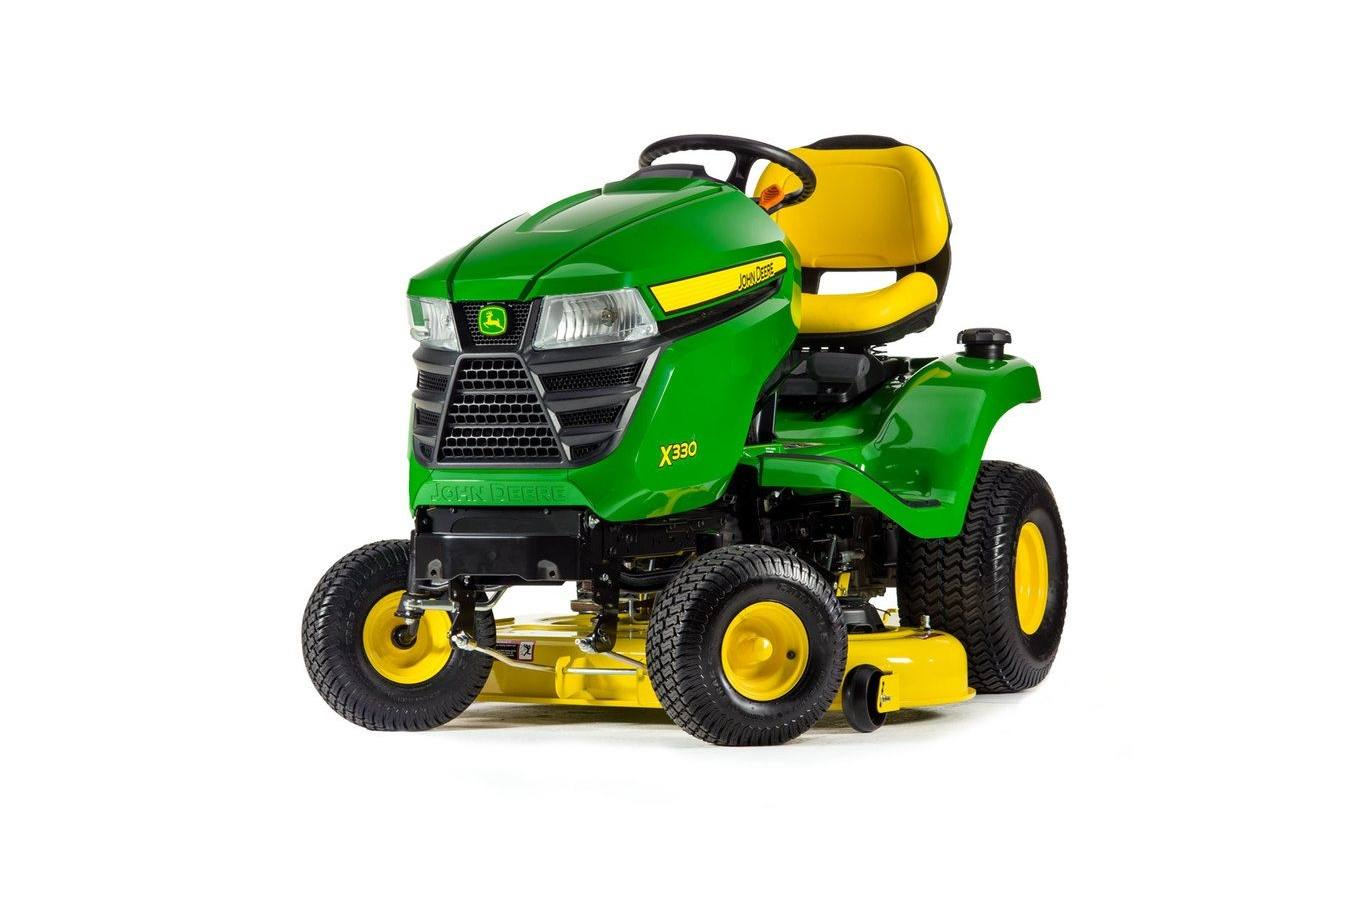 New Inventory from John Deere and Land Pride Art's Lawn Mower Shop